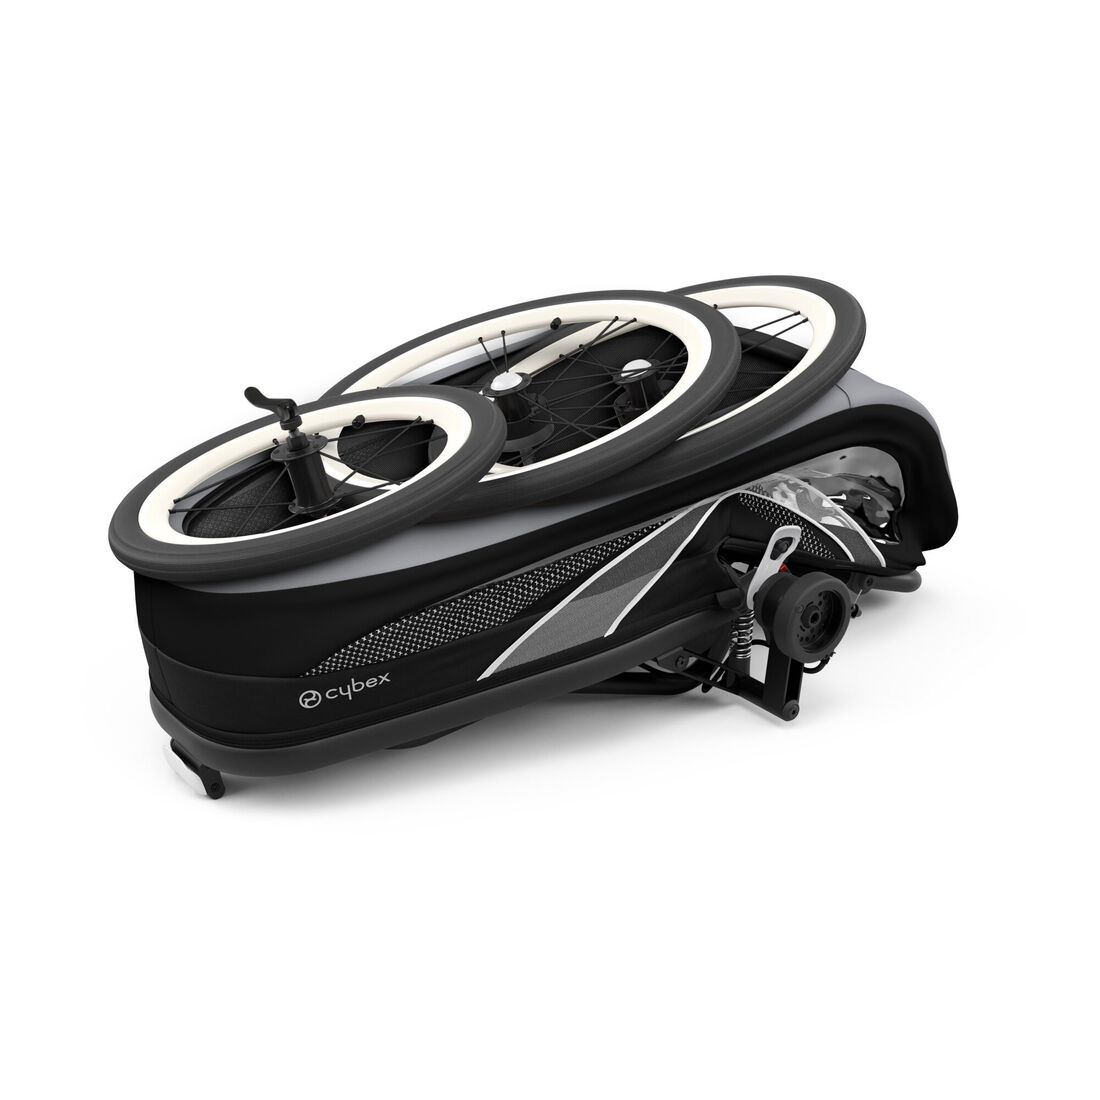 CYBEX Zeno One Box - All Black in All Black large image number 7